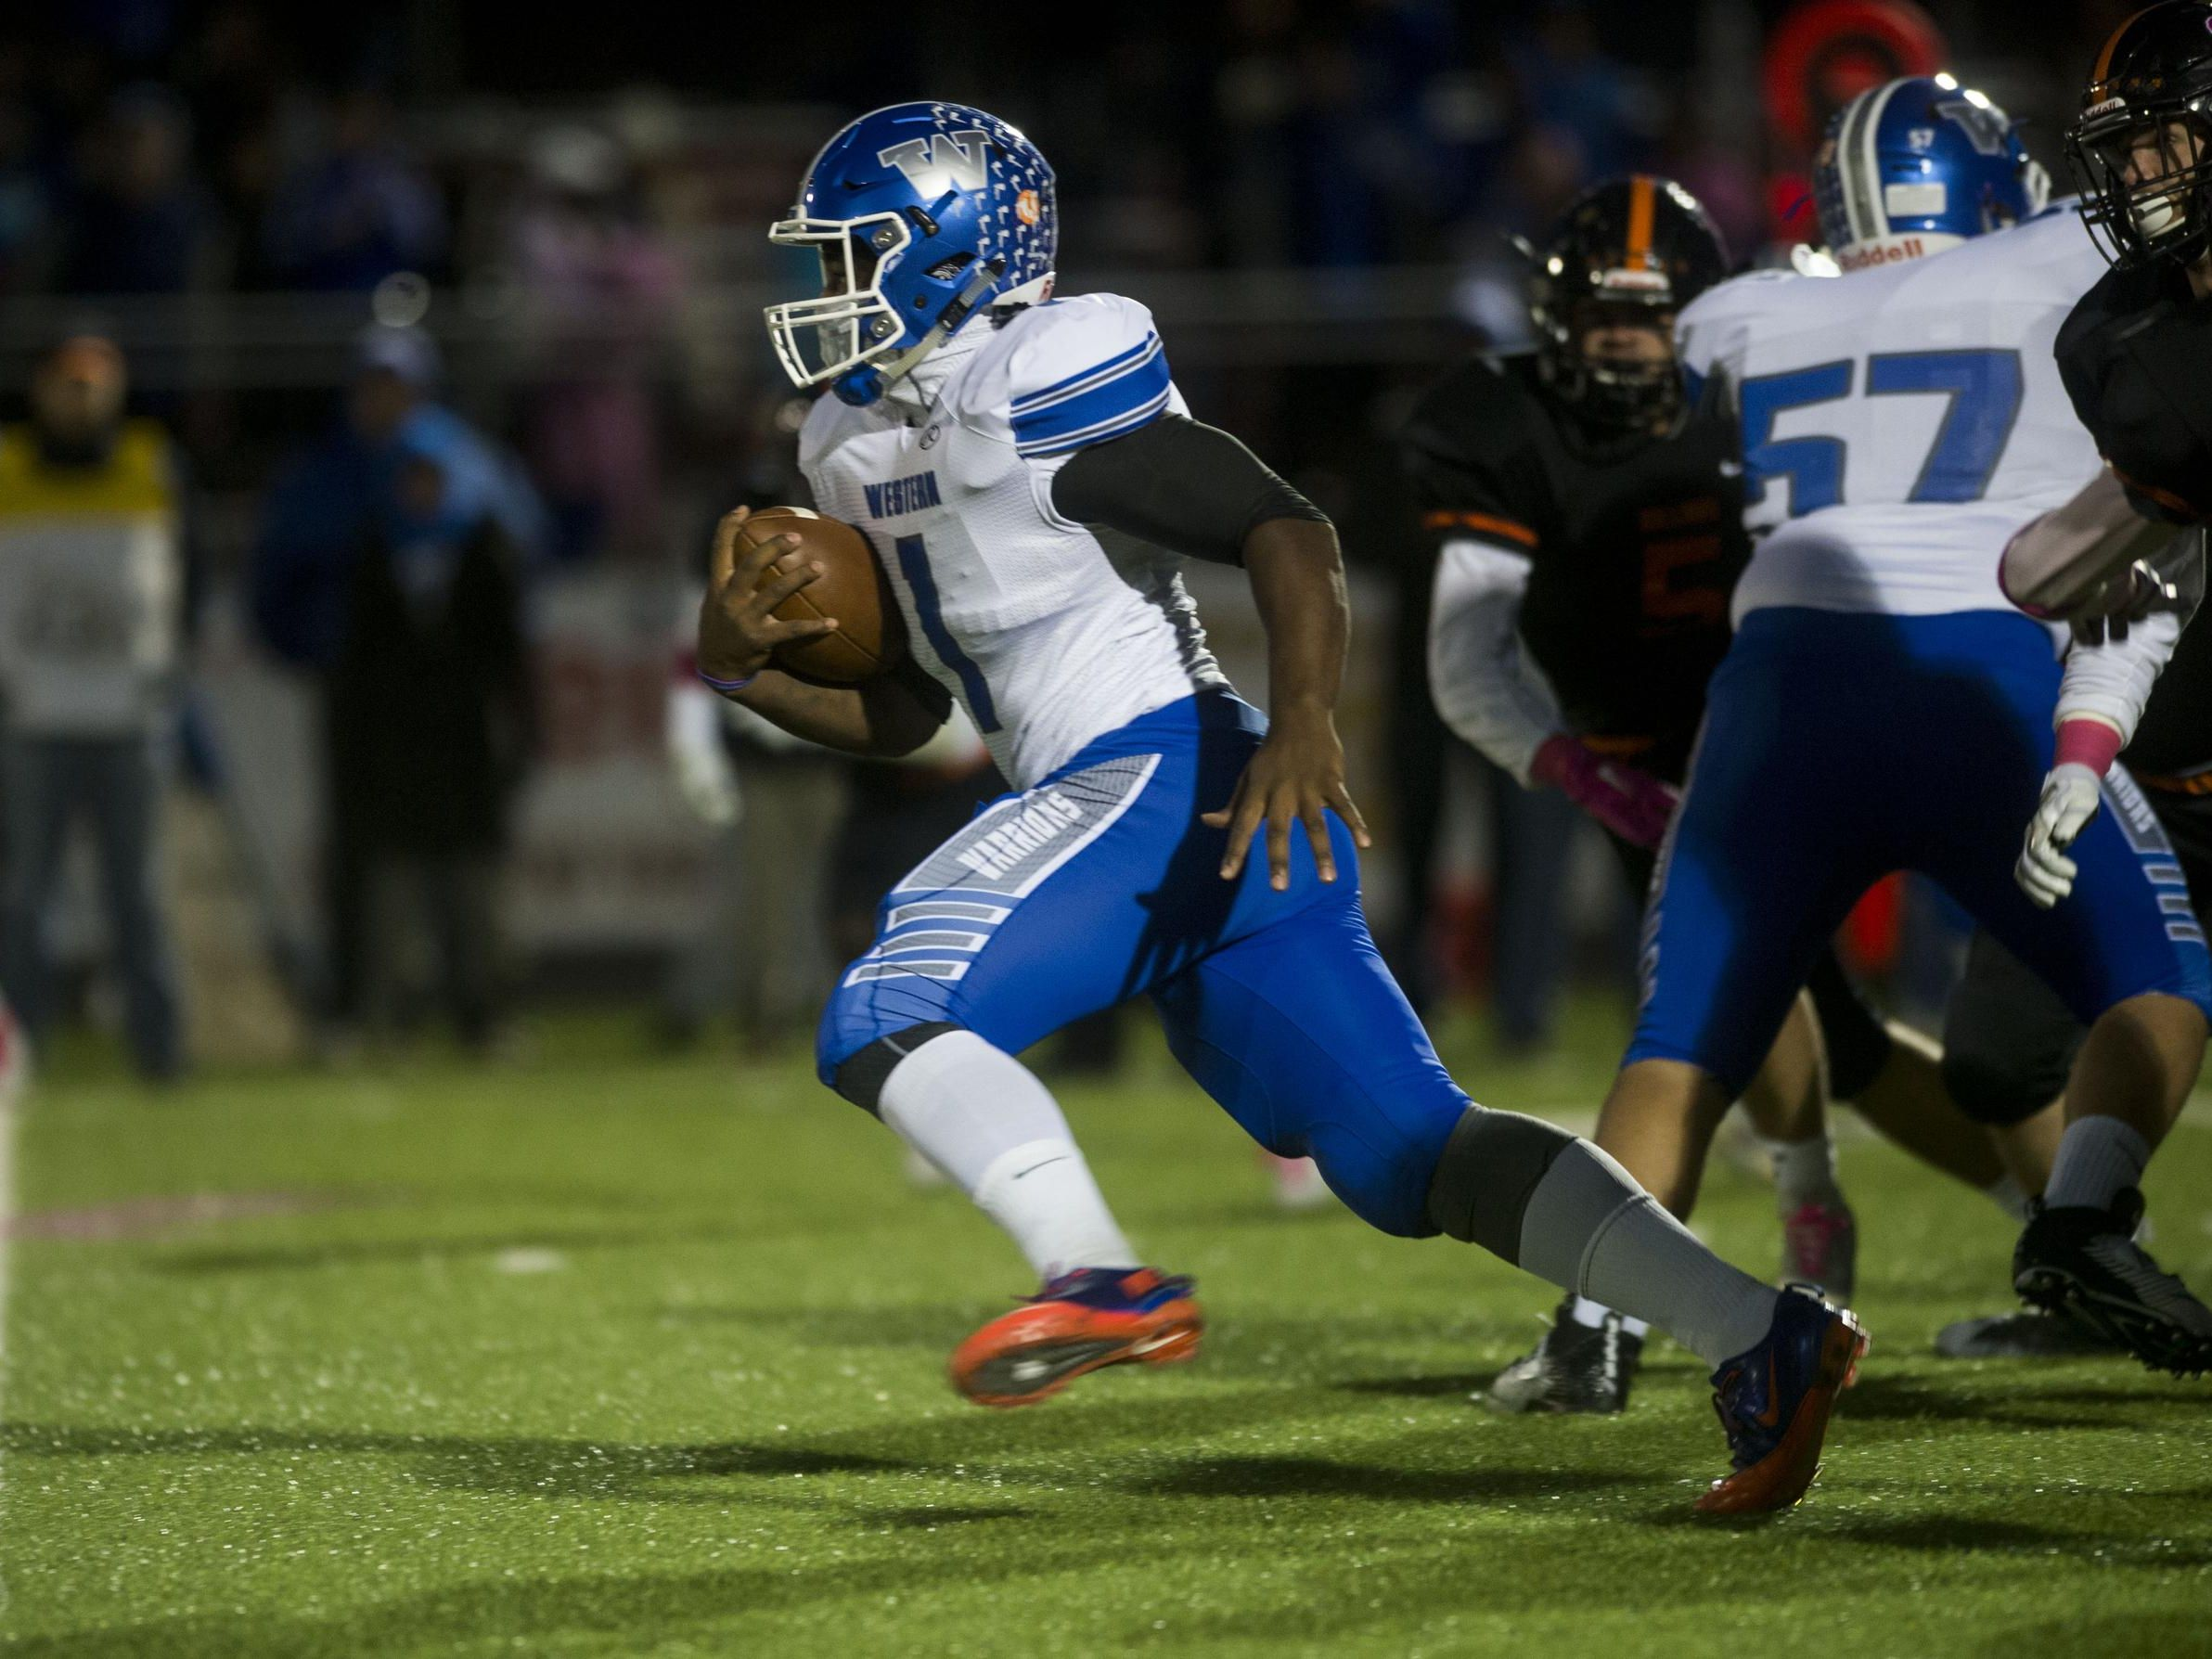 Western's Jalen Marshall carries in the Warriors' victory over Brighton Friday night. The Warriors won the Kensington Valley Lakes Division crown.